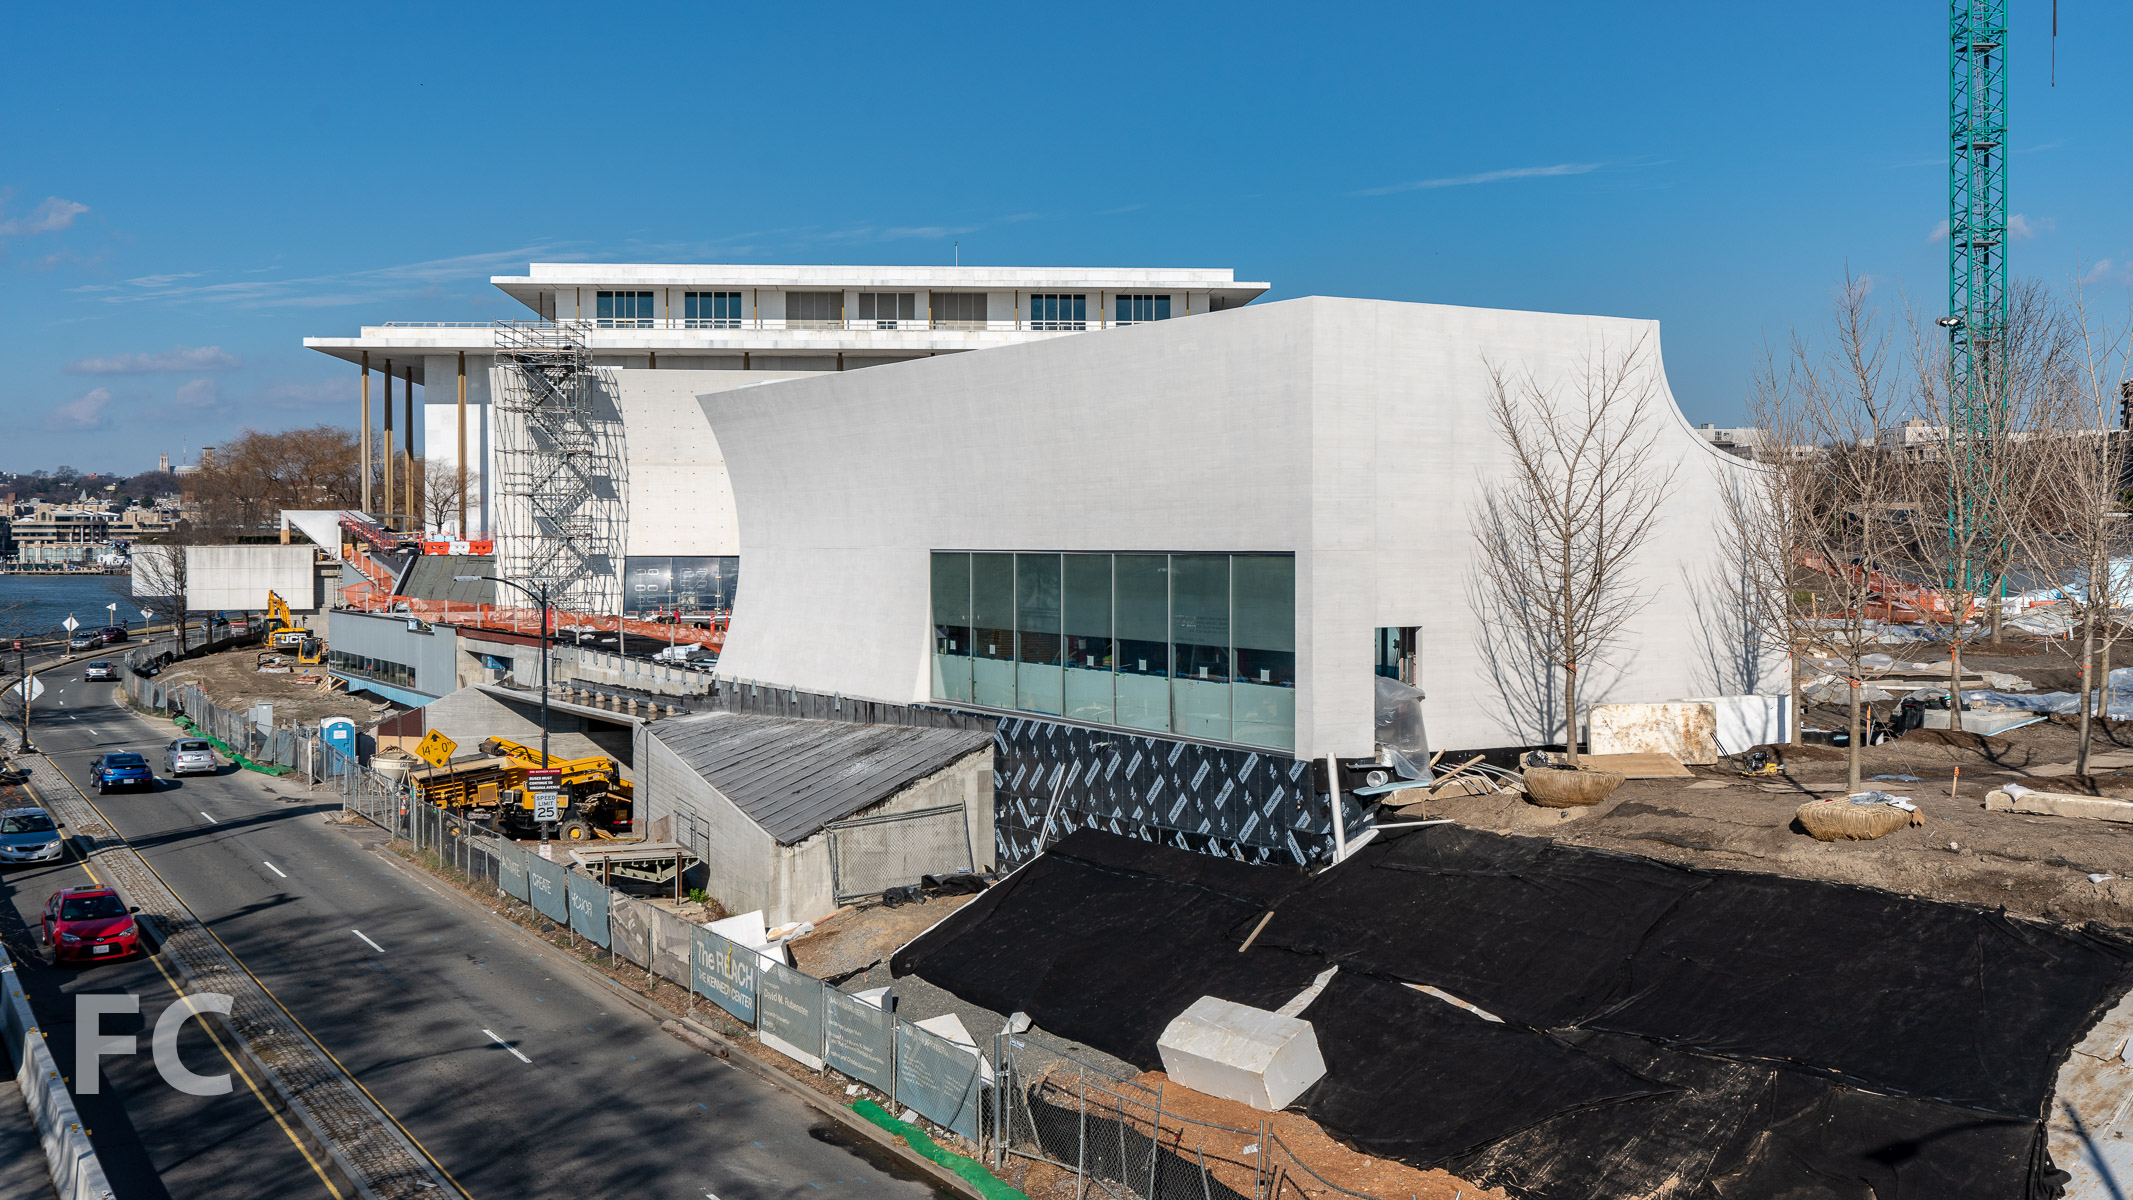 2019_01_06-Kennedy Center Expansion-DSC00291.jpg